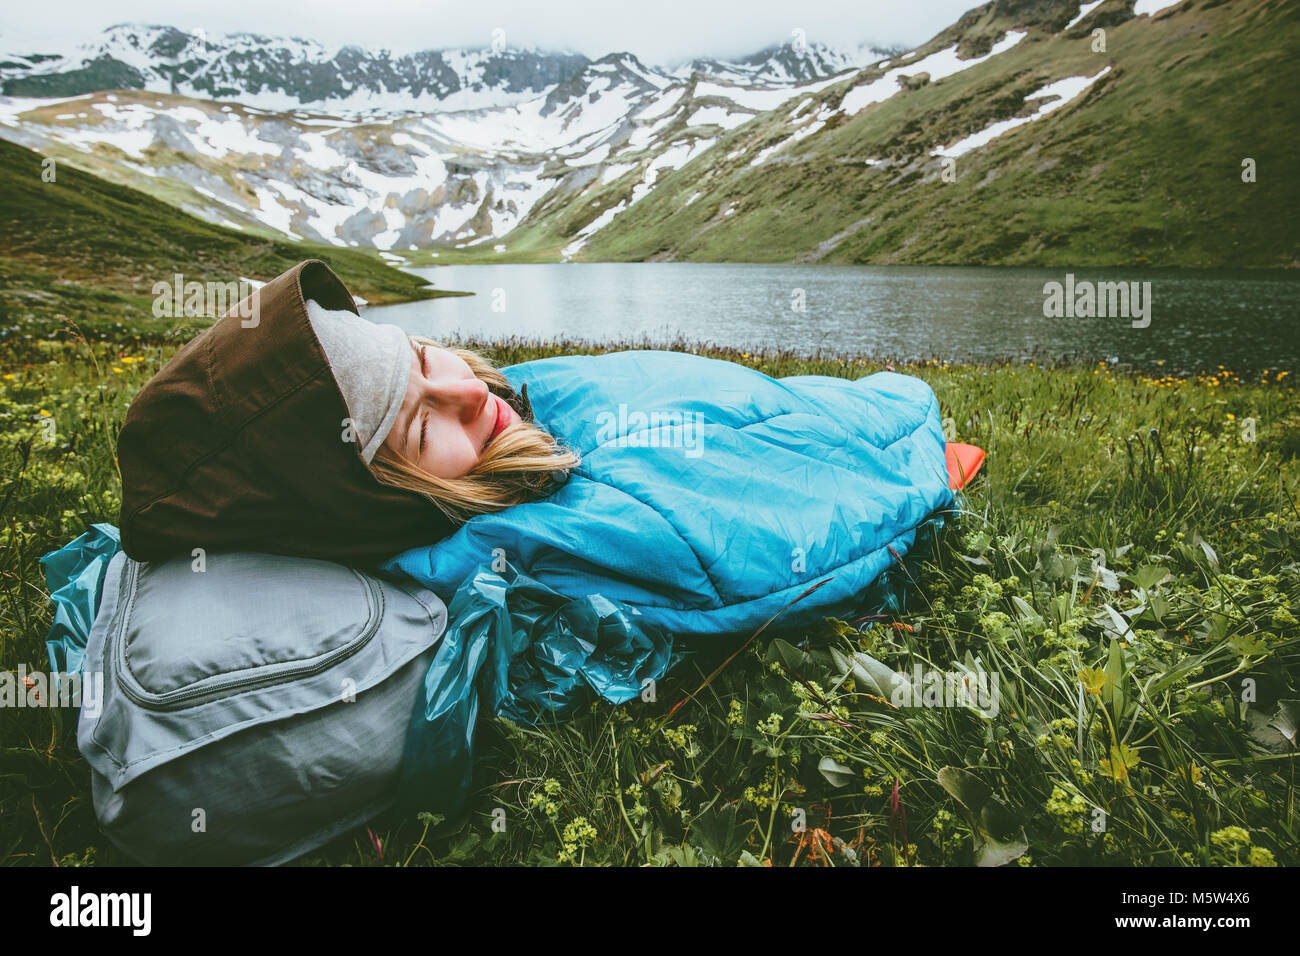 Woman relaxing in sleeping bag laying on grass enjoying lake and mountains landscape Travel Lifestyle camping concept - Stock Image